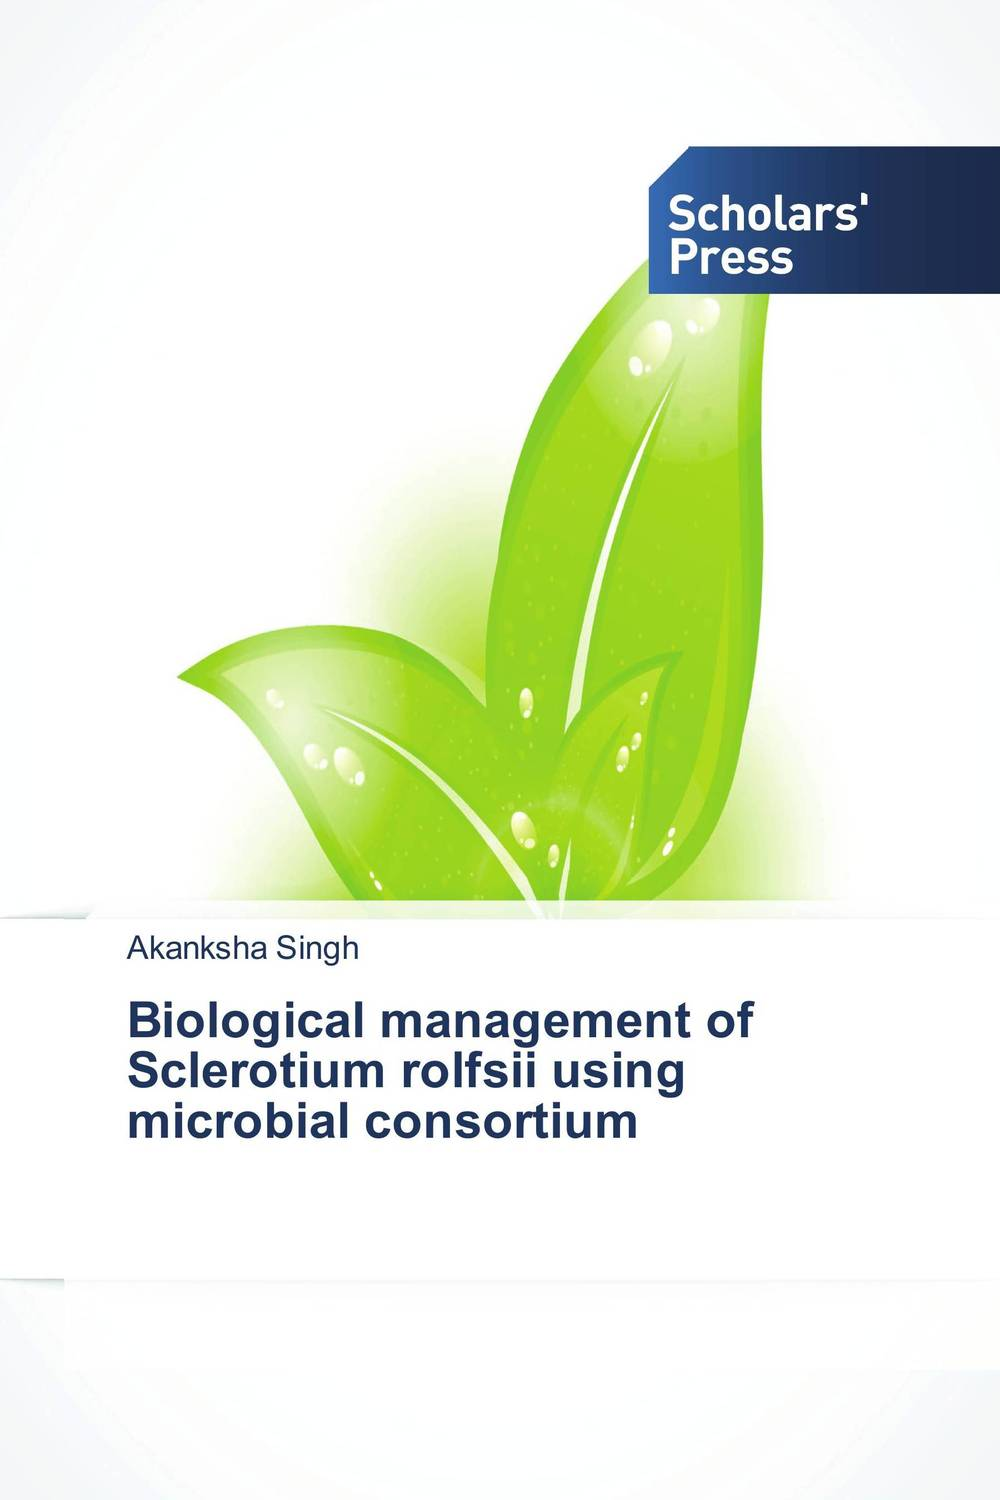 Biological management of Sclerotium rolfsii using microbial consortium violet ugrat ways to heaven colonization of mars i